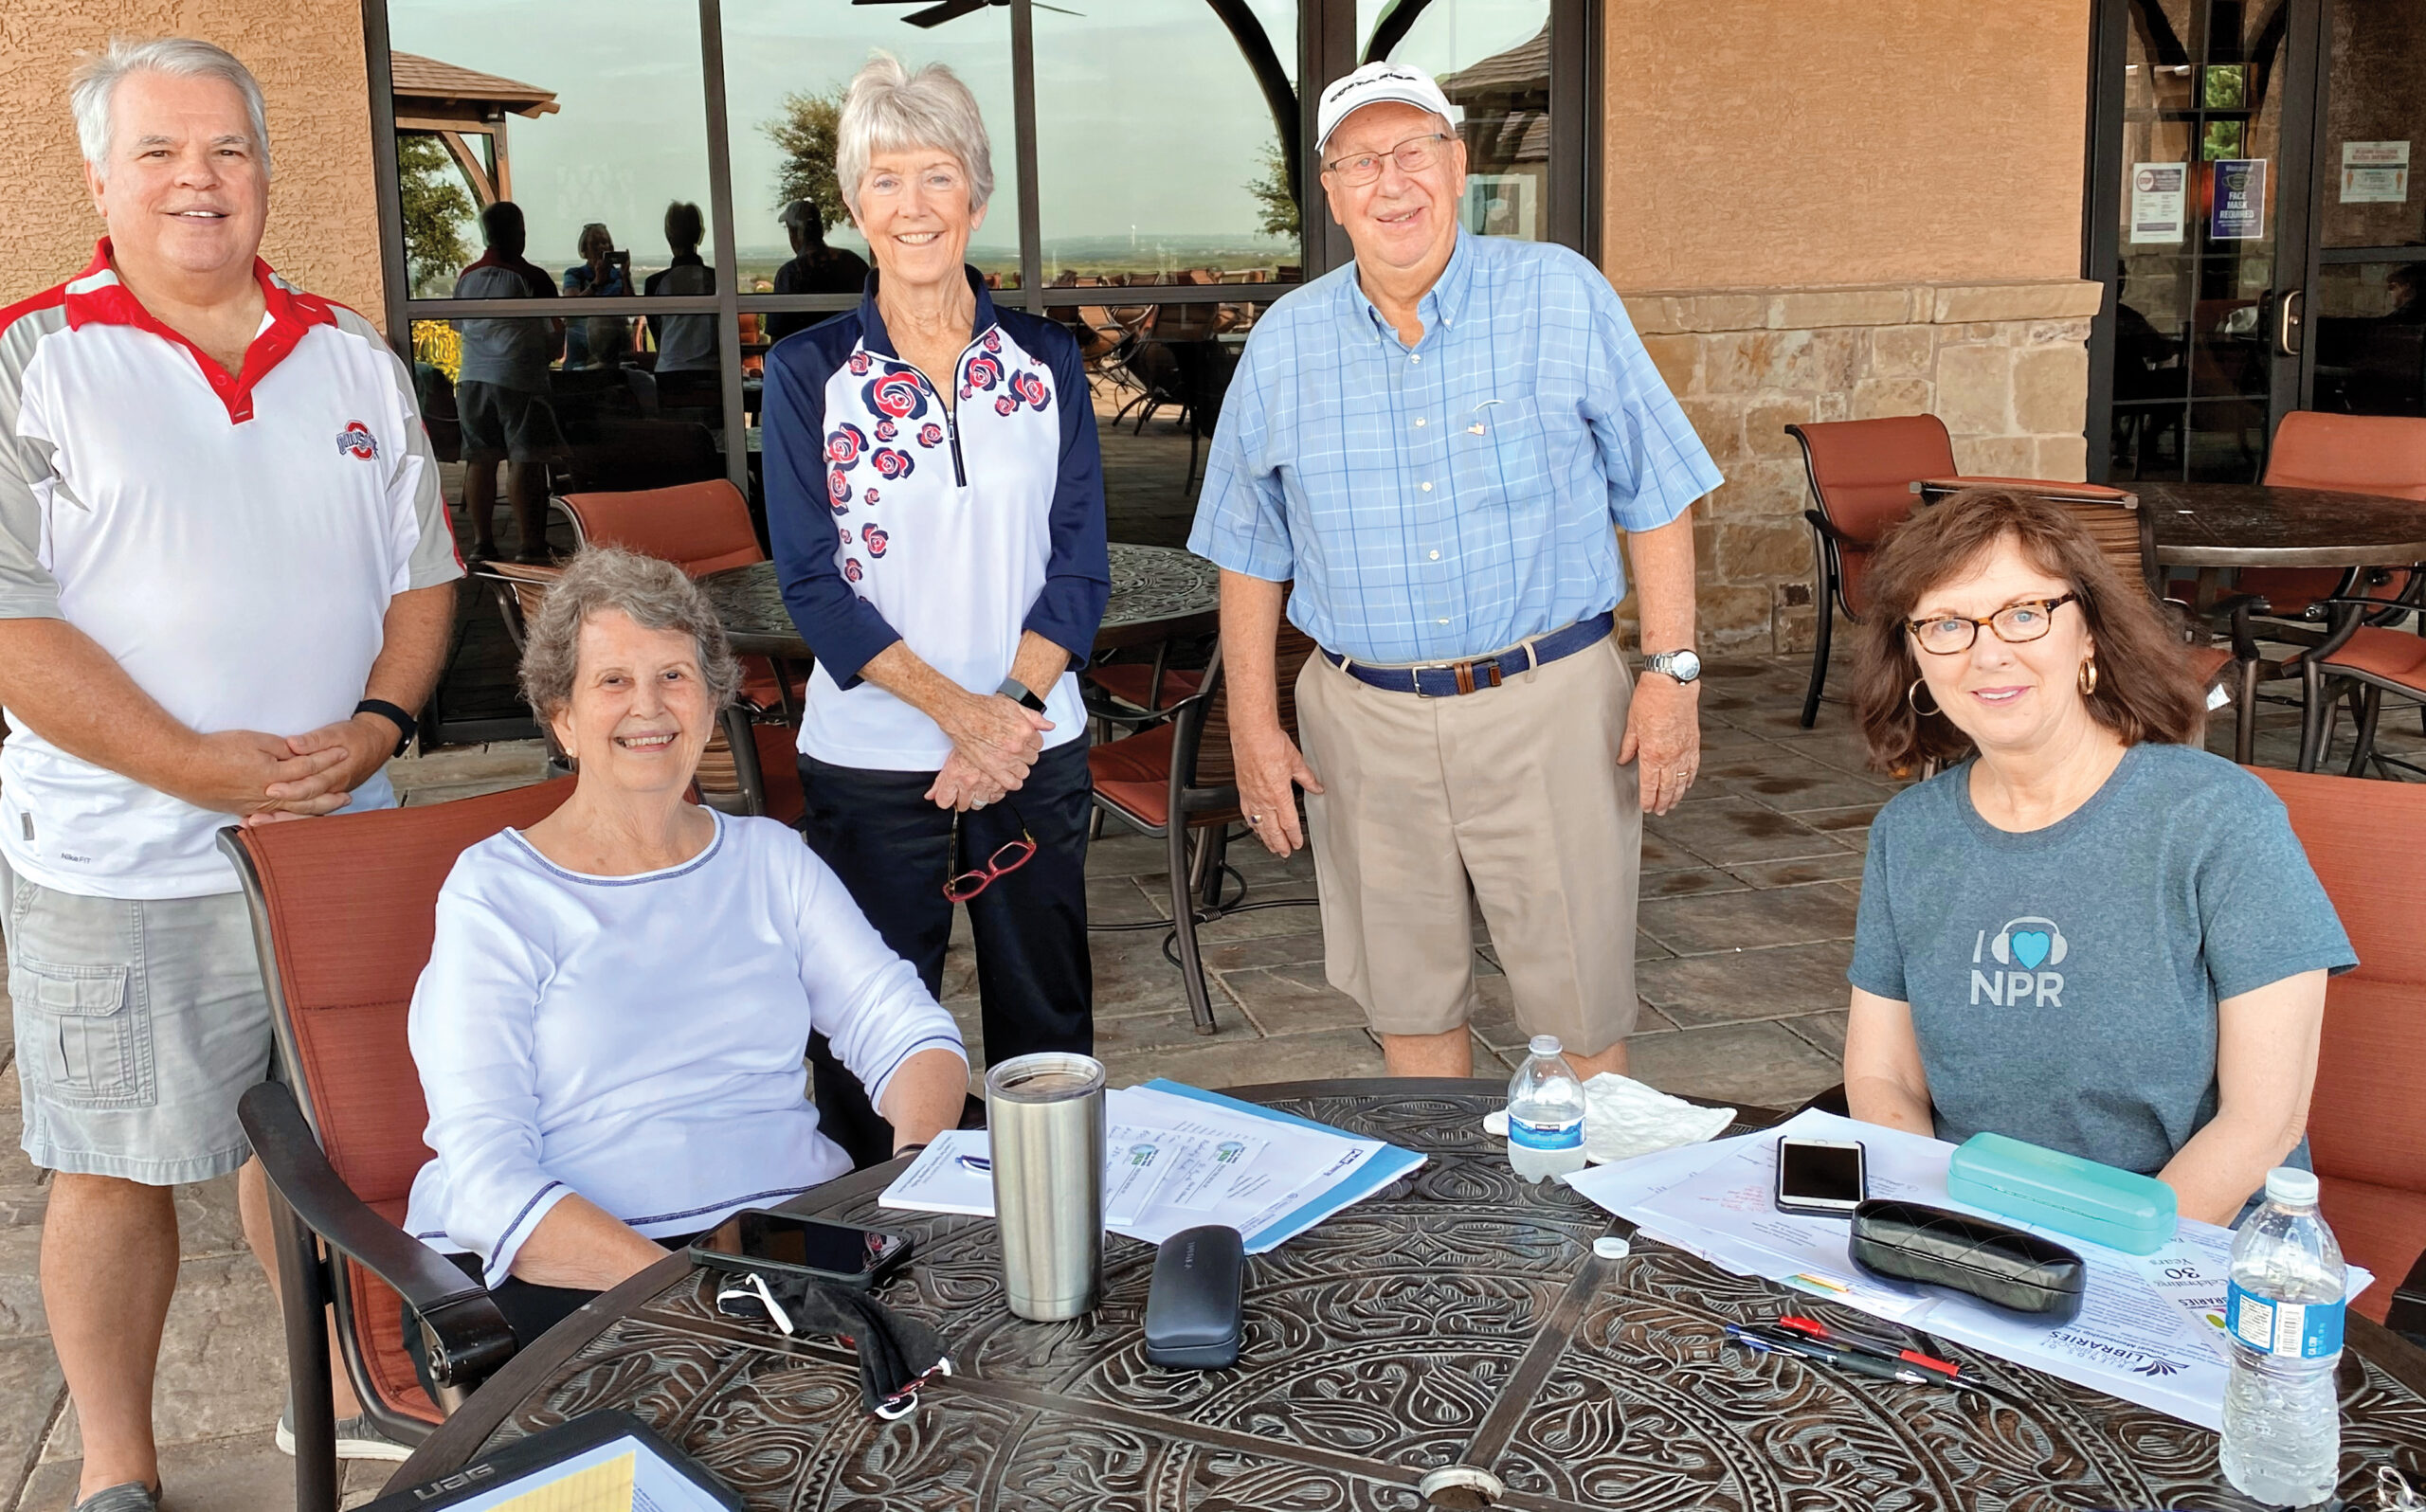 FOL Executive Committee members after a recent socially distanced meeting; Standing (left to right): Chair Alan Albarran, Vice Chair Marsha Scholze, Treasurer Jim Ryerson; Seated: Secretary Ann Madigan, Past Chair Linda Bono.